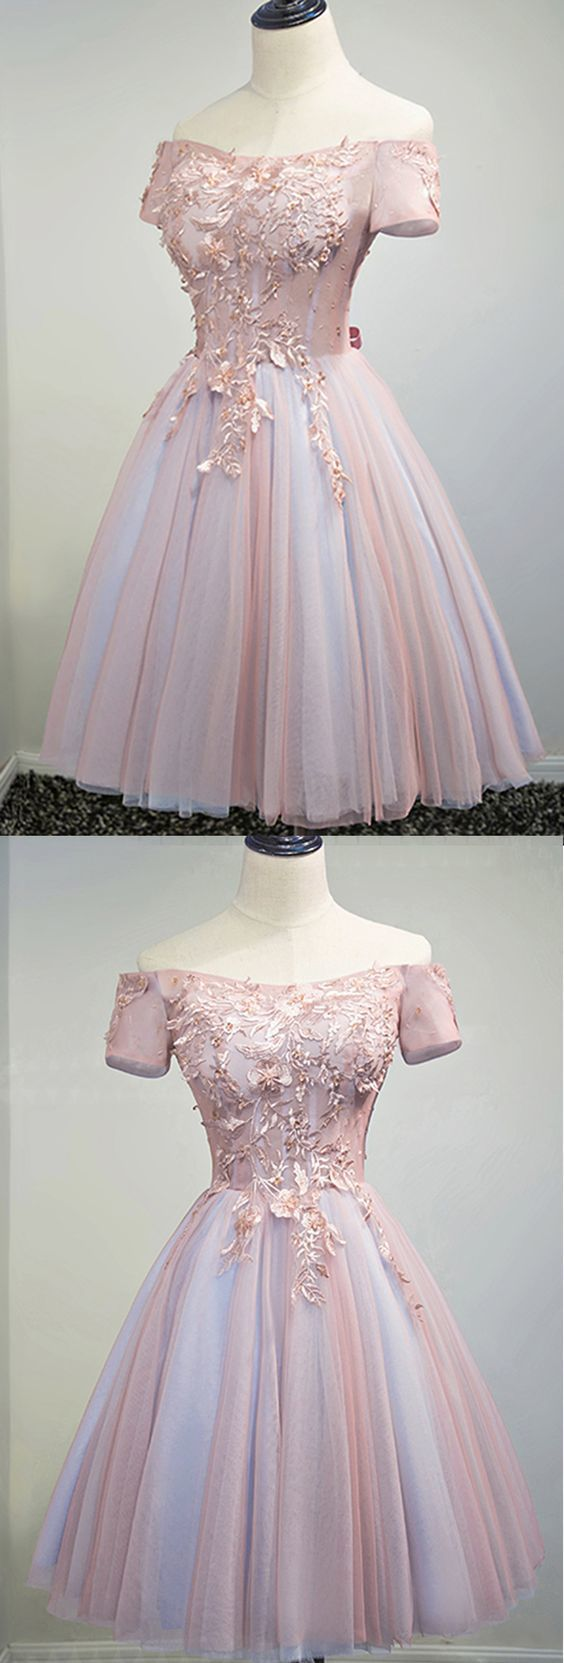 Cute tulle off shoulder prom dress short prom dress for teens in